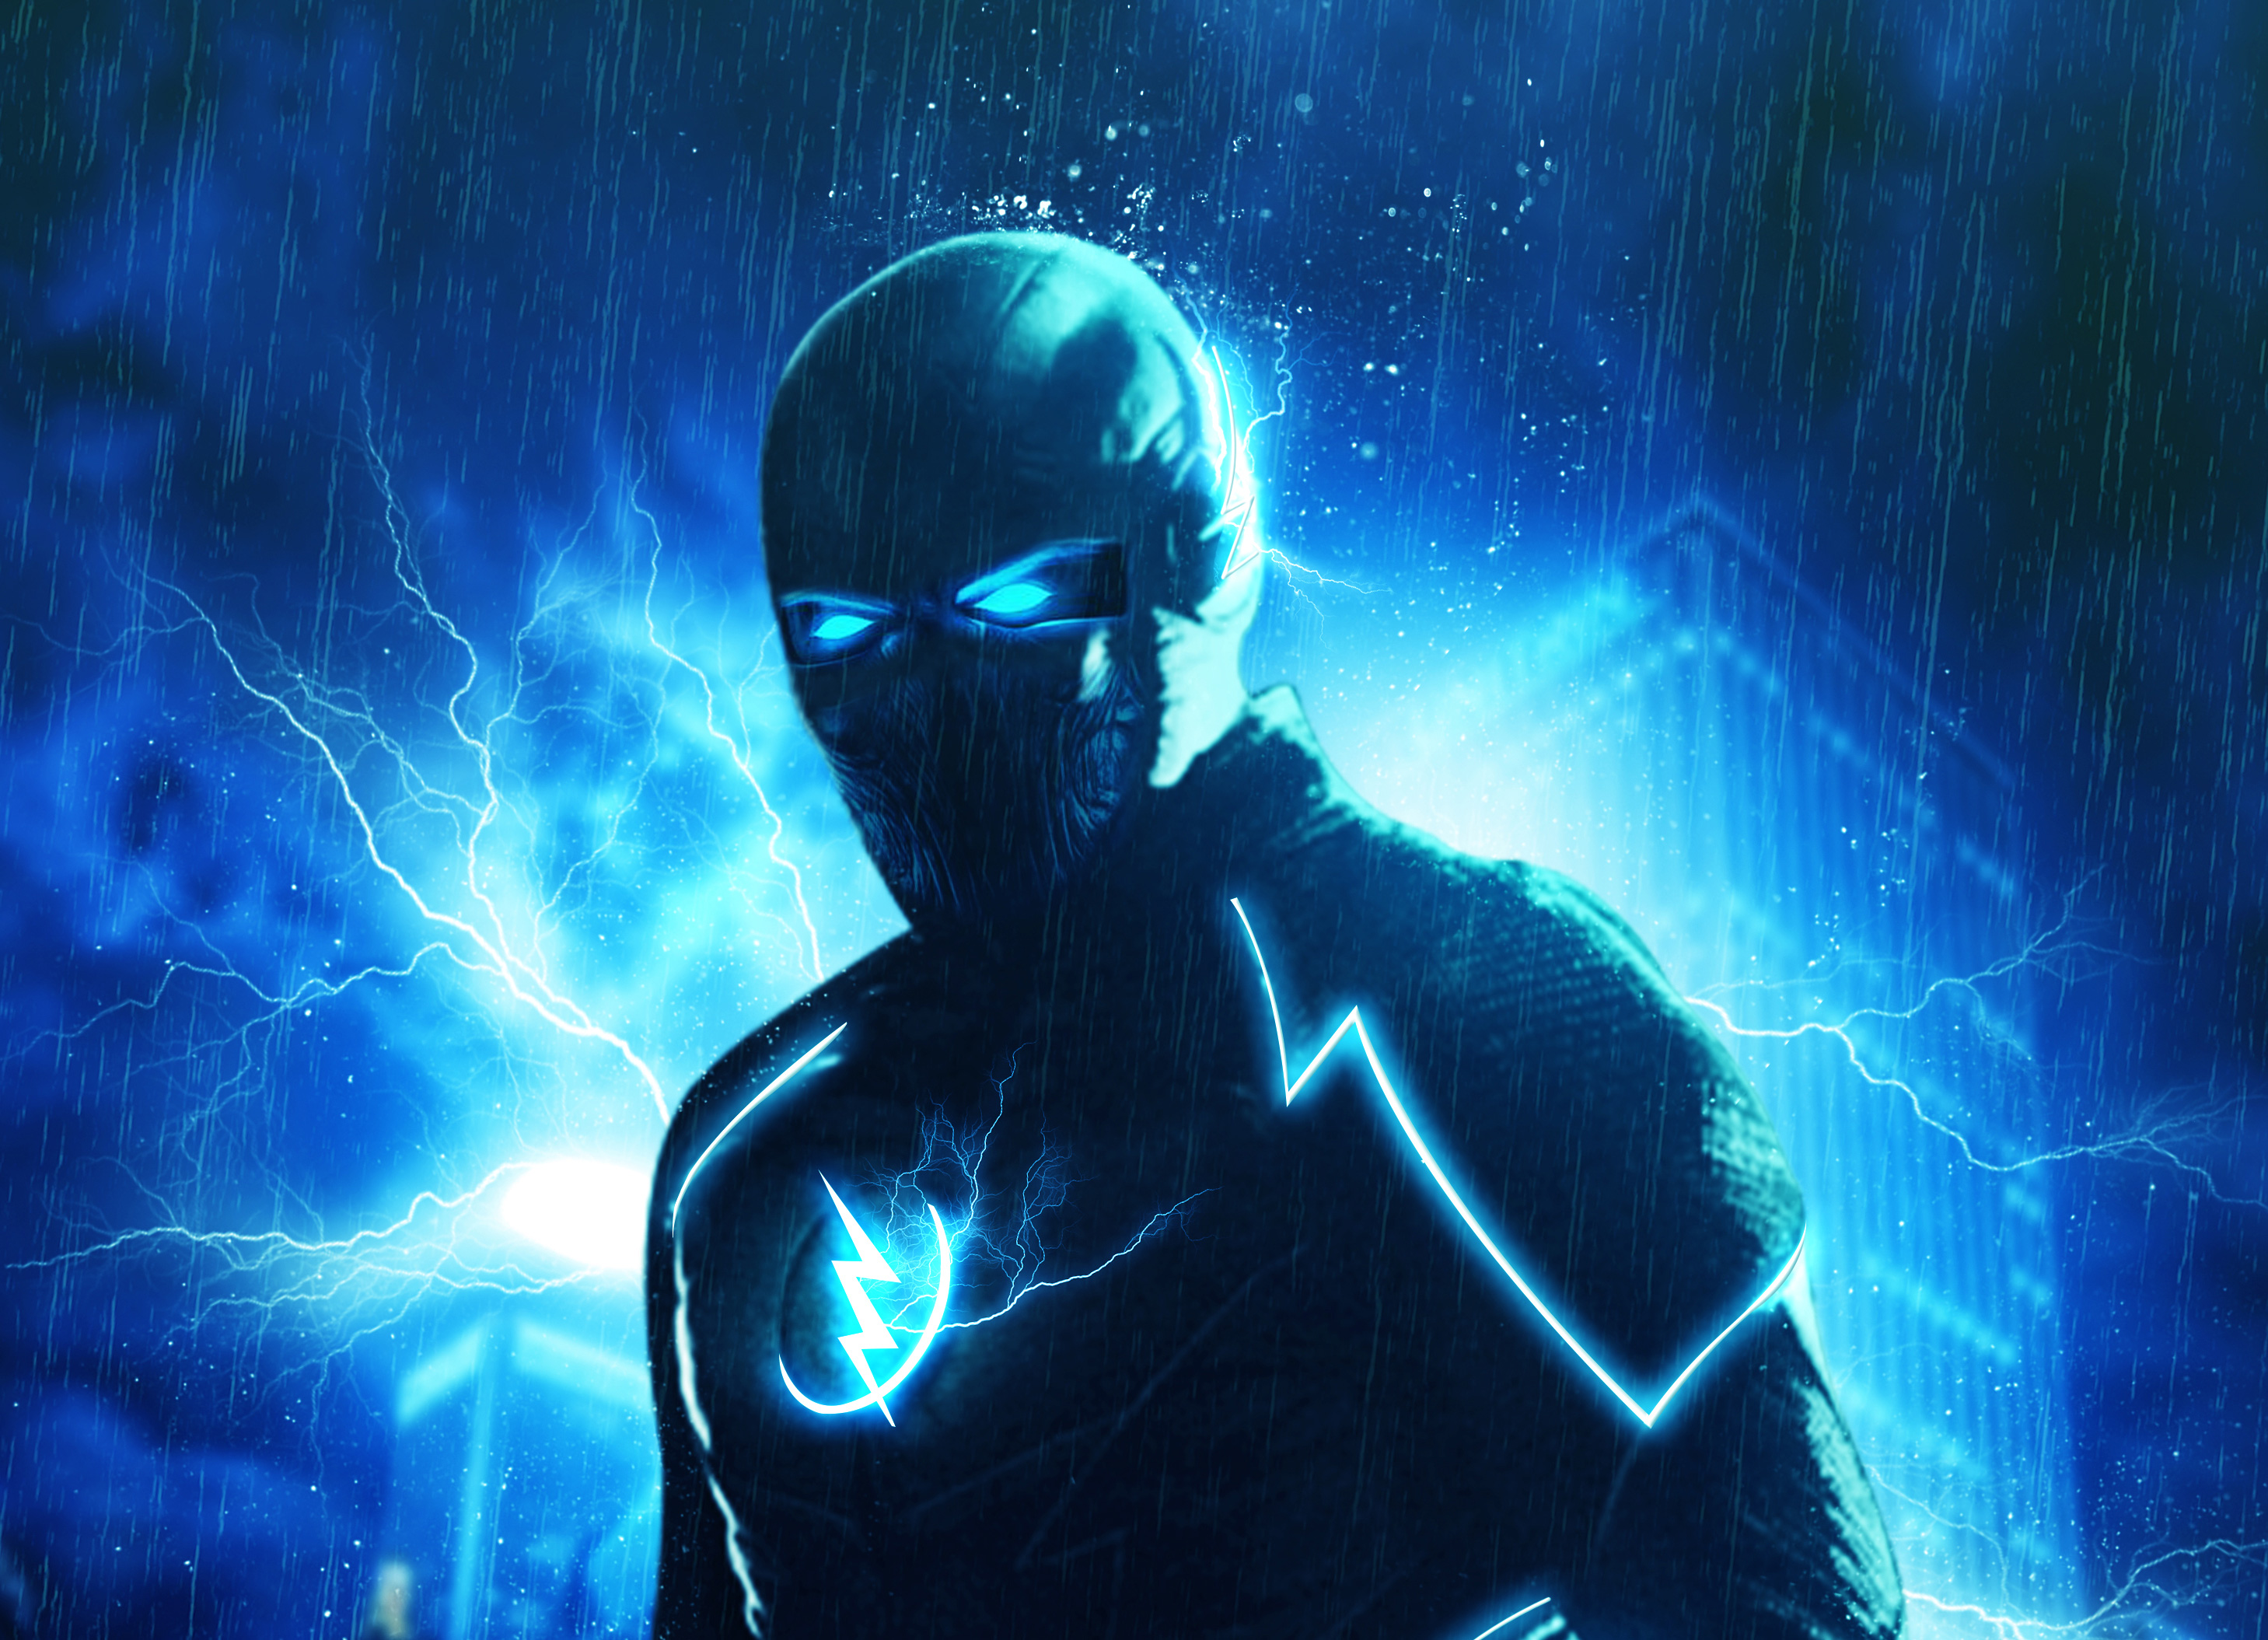 zoom in flash artwork hd tv shows 4k wallpapers images